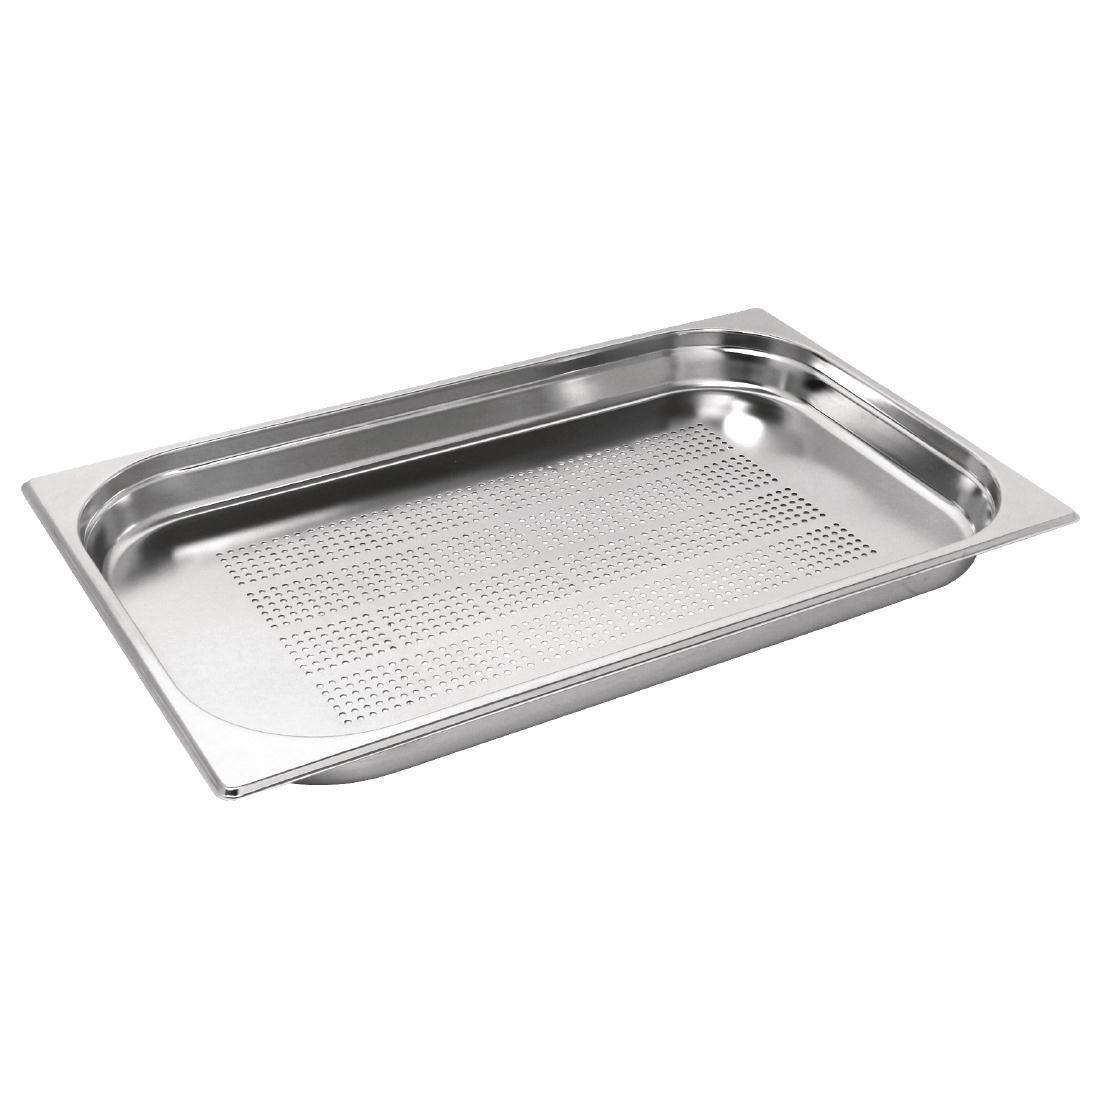 Vogue Stainless Steel Perforated 1/1 Gastronorm Pan 20mm - K827